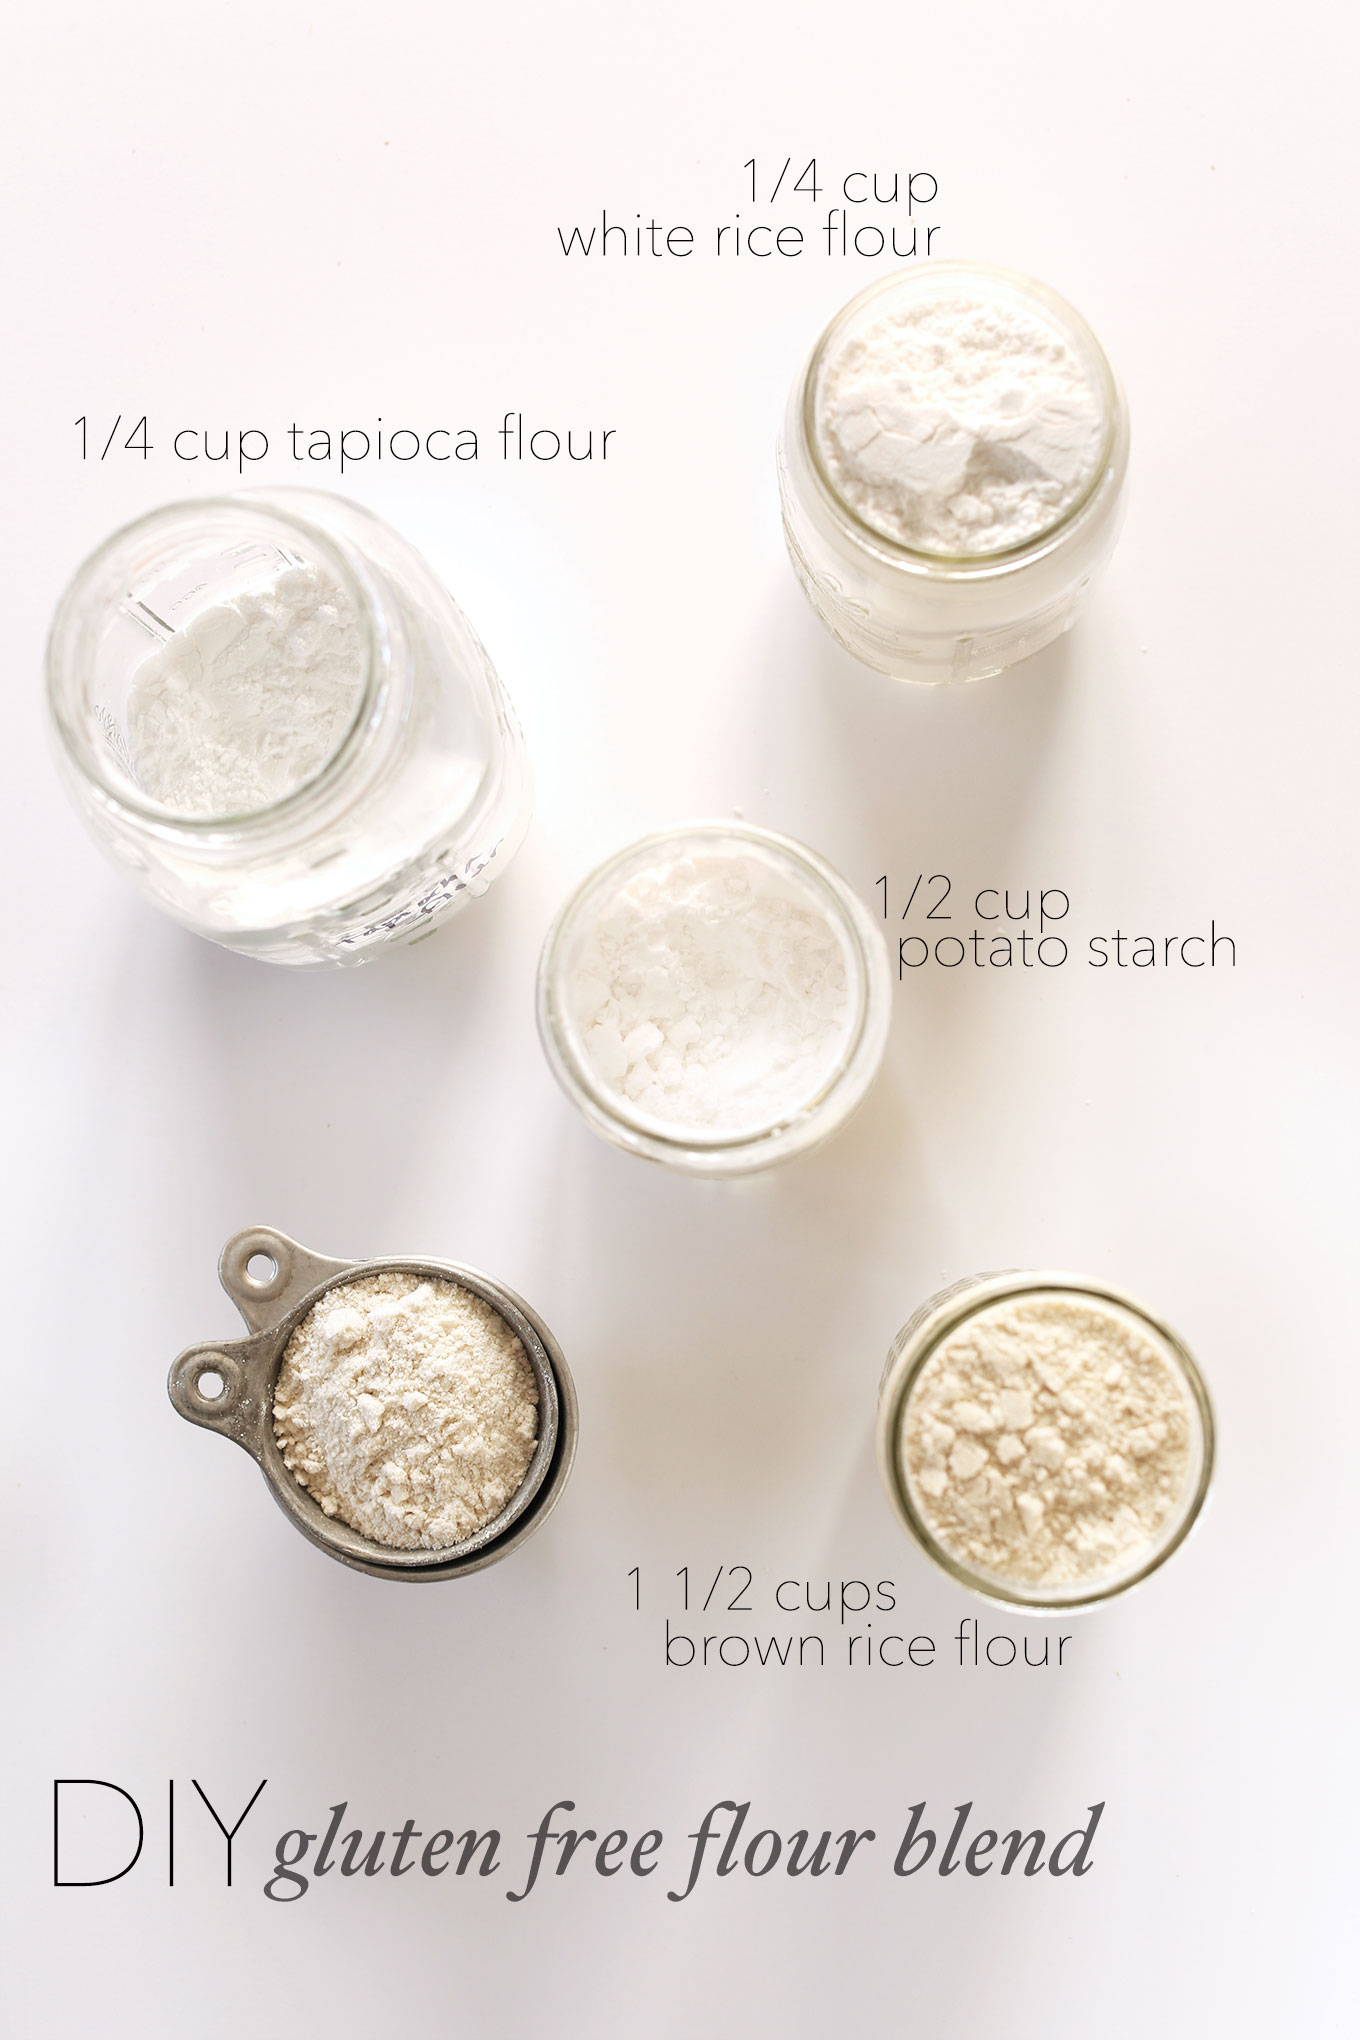 Jars of tapioca flour, white rice flour, potato starch, and brown rice flour for making our DIY Gluten-Free Flour Blend